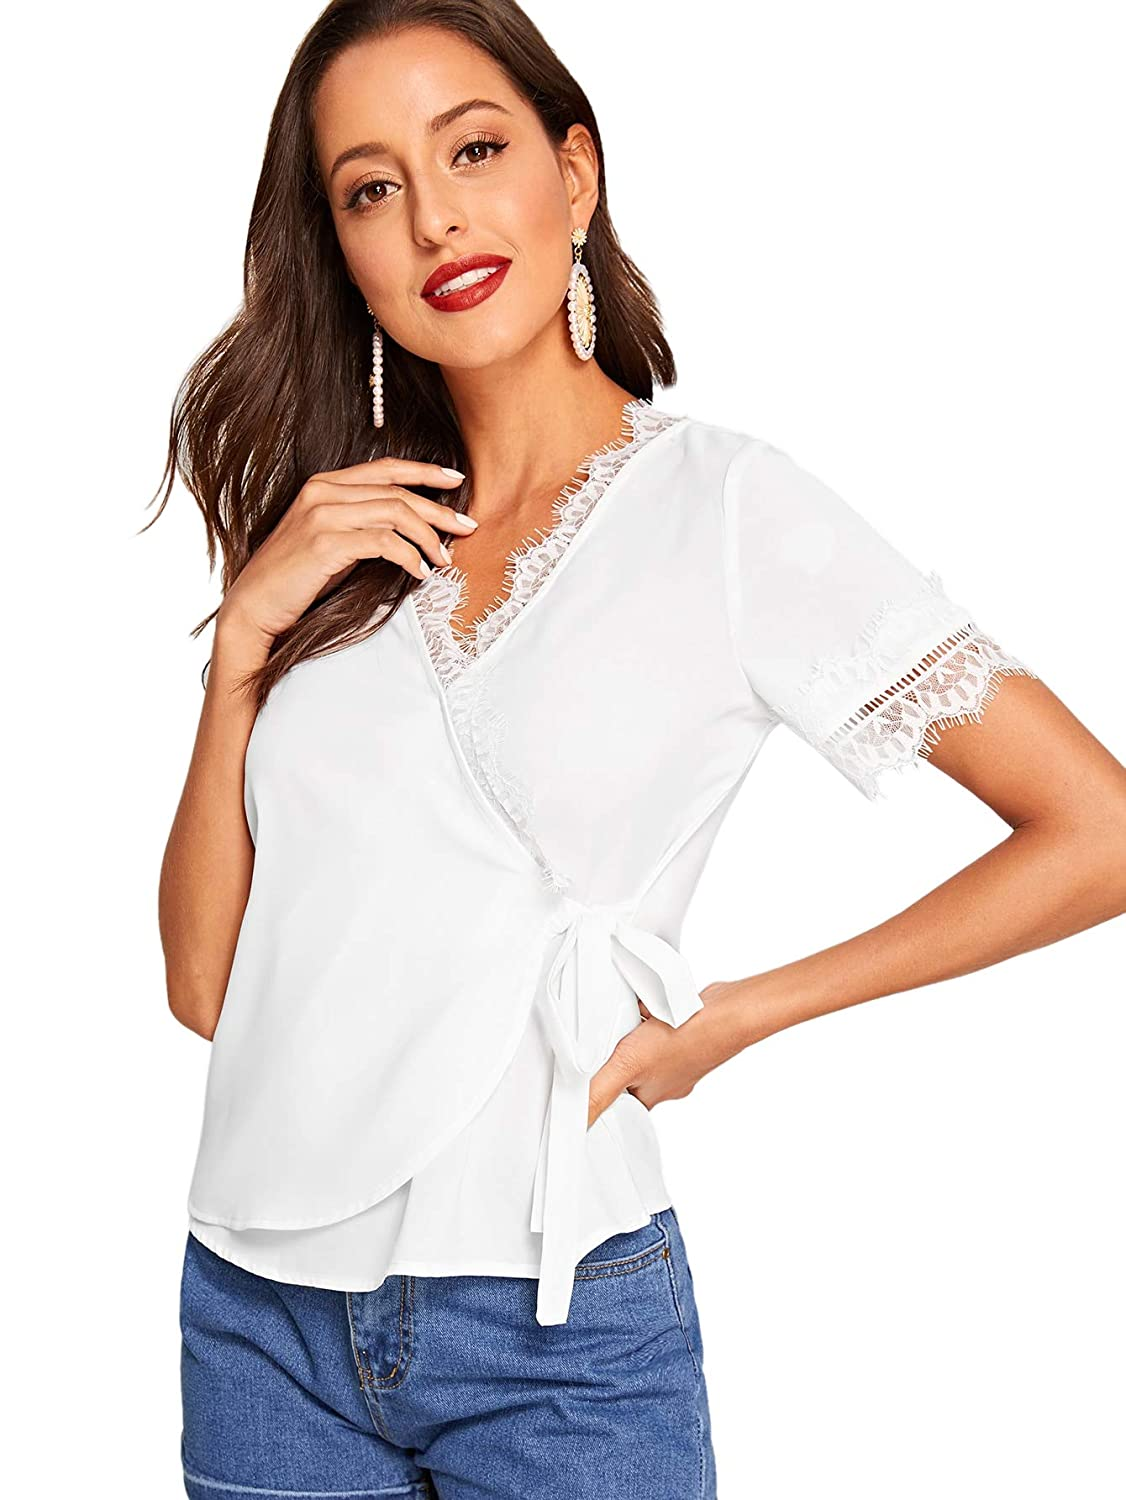 999c6f4afe SheIn Women's Casual V Neck Warp Knot Front Lace Trim Short Sleeve Blouse  Shirt Top at Amazon Women's Clothing store: